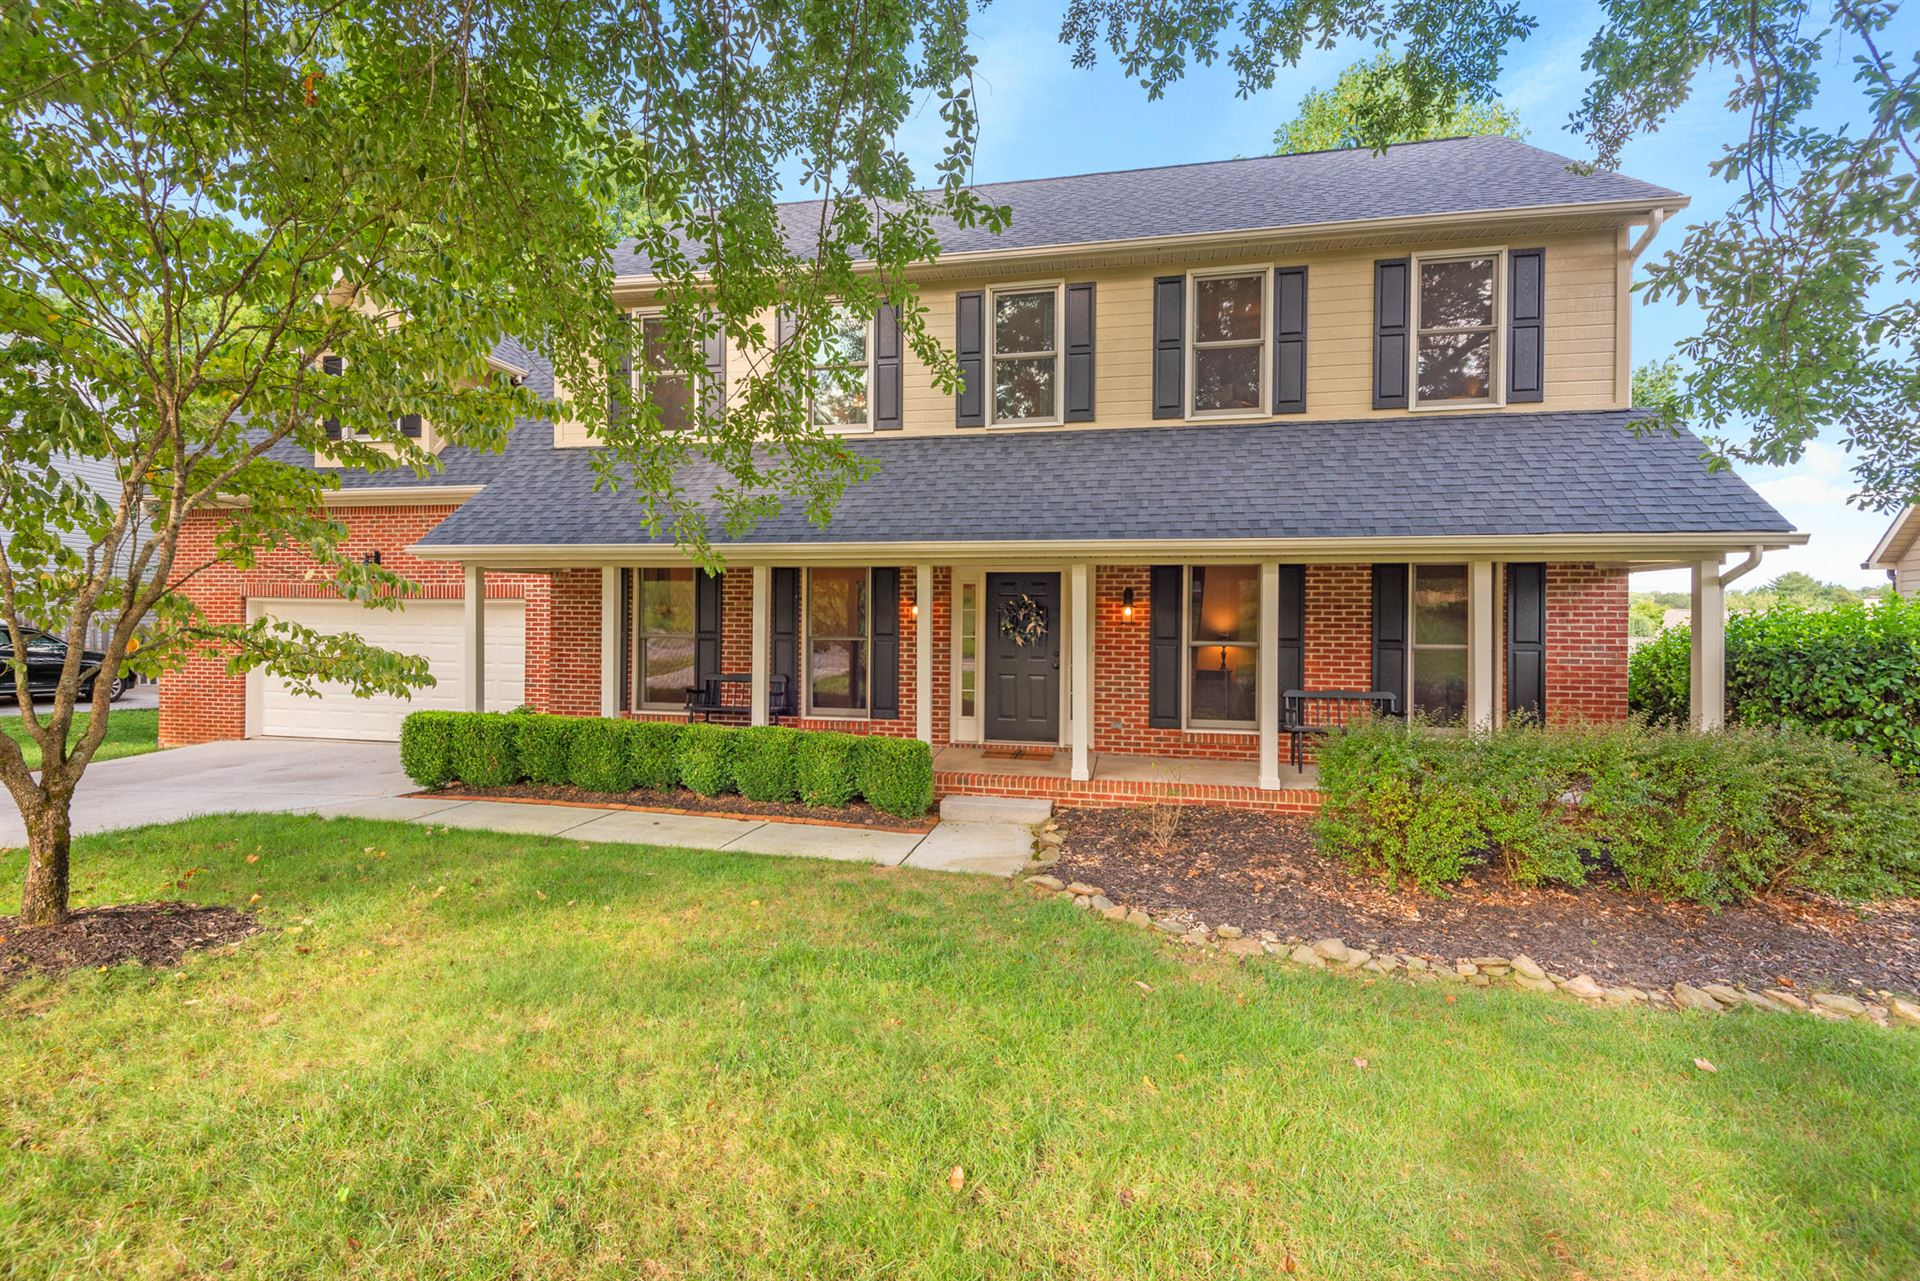 Photo of 9009 Straw Flower Drive, Knoxville, TN 37922 (MLS # 1133323)